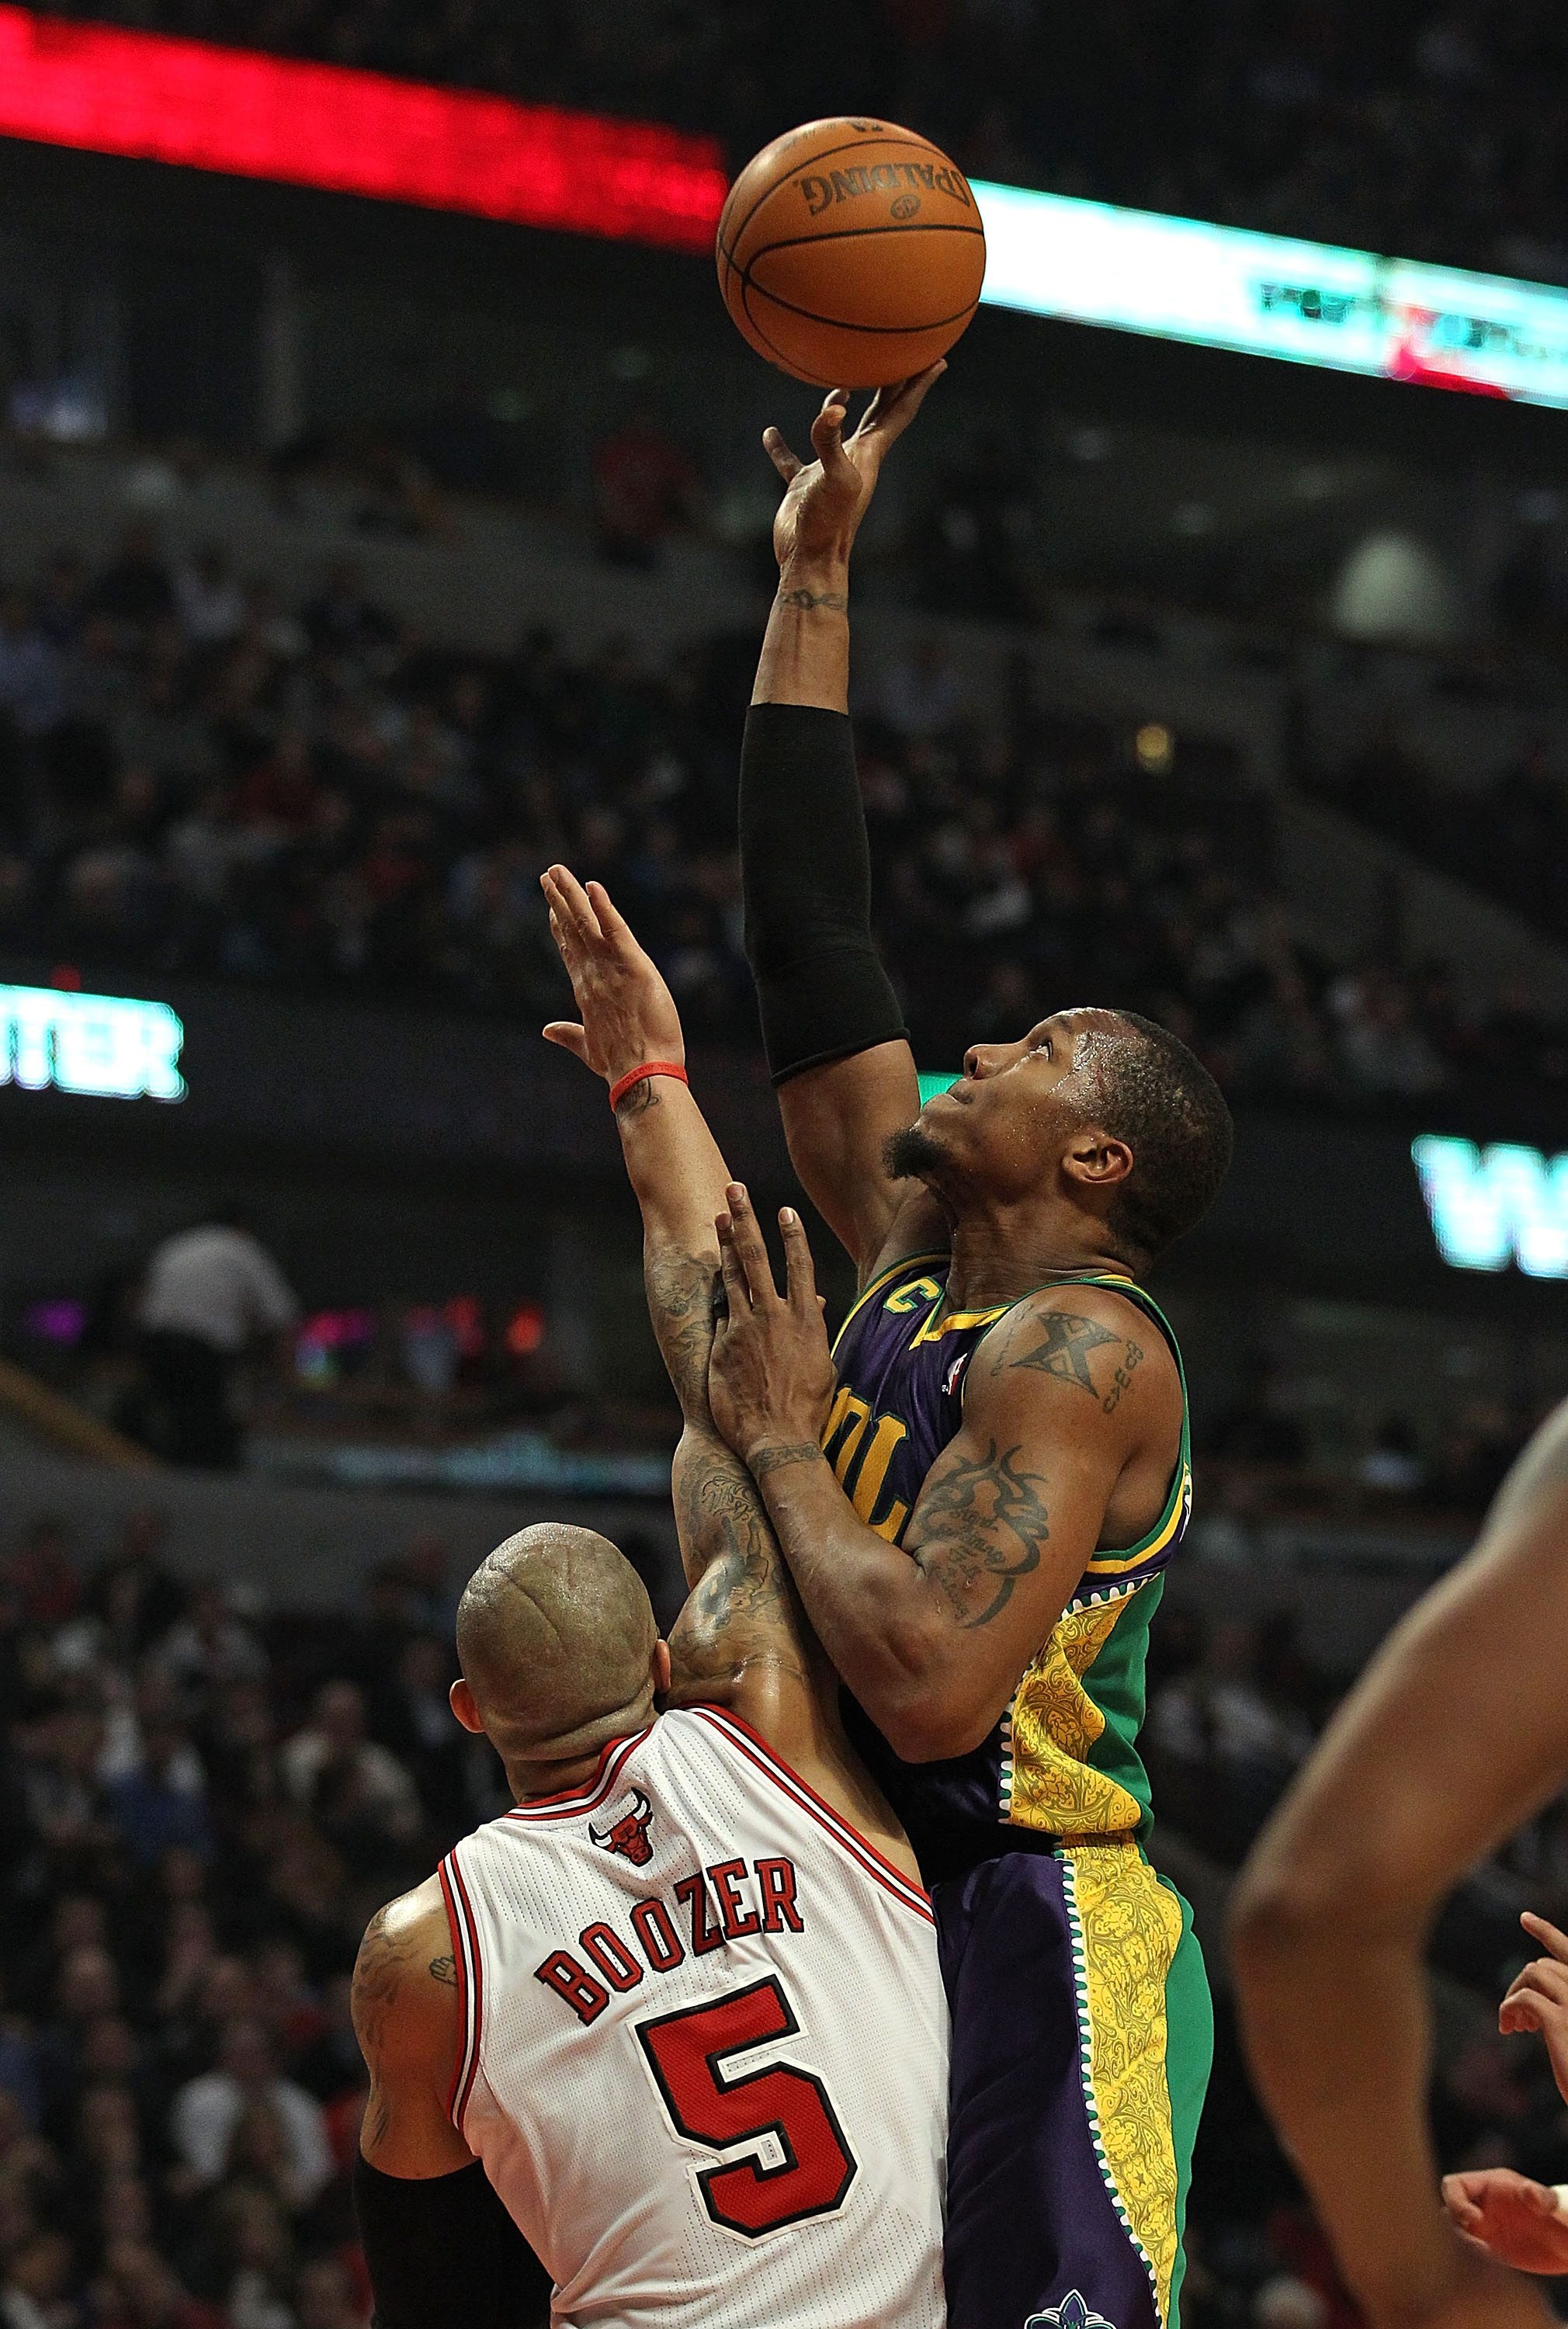 CHICAGO, IL - MARCH 07: David West #30 of the New Orleans Hornets puts up a shot over Carlos Boozer #5 of the Chicago Bulls at the United Center on March 7, 2011 in Chicago, Illinois. The Bulls defeated the Hornets 85-77. NOTE TO USER: User expressly ackn